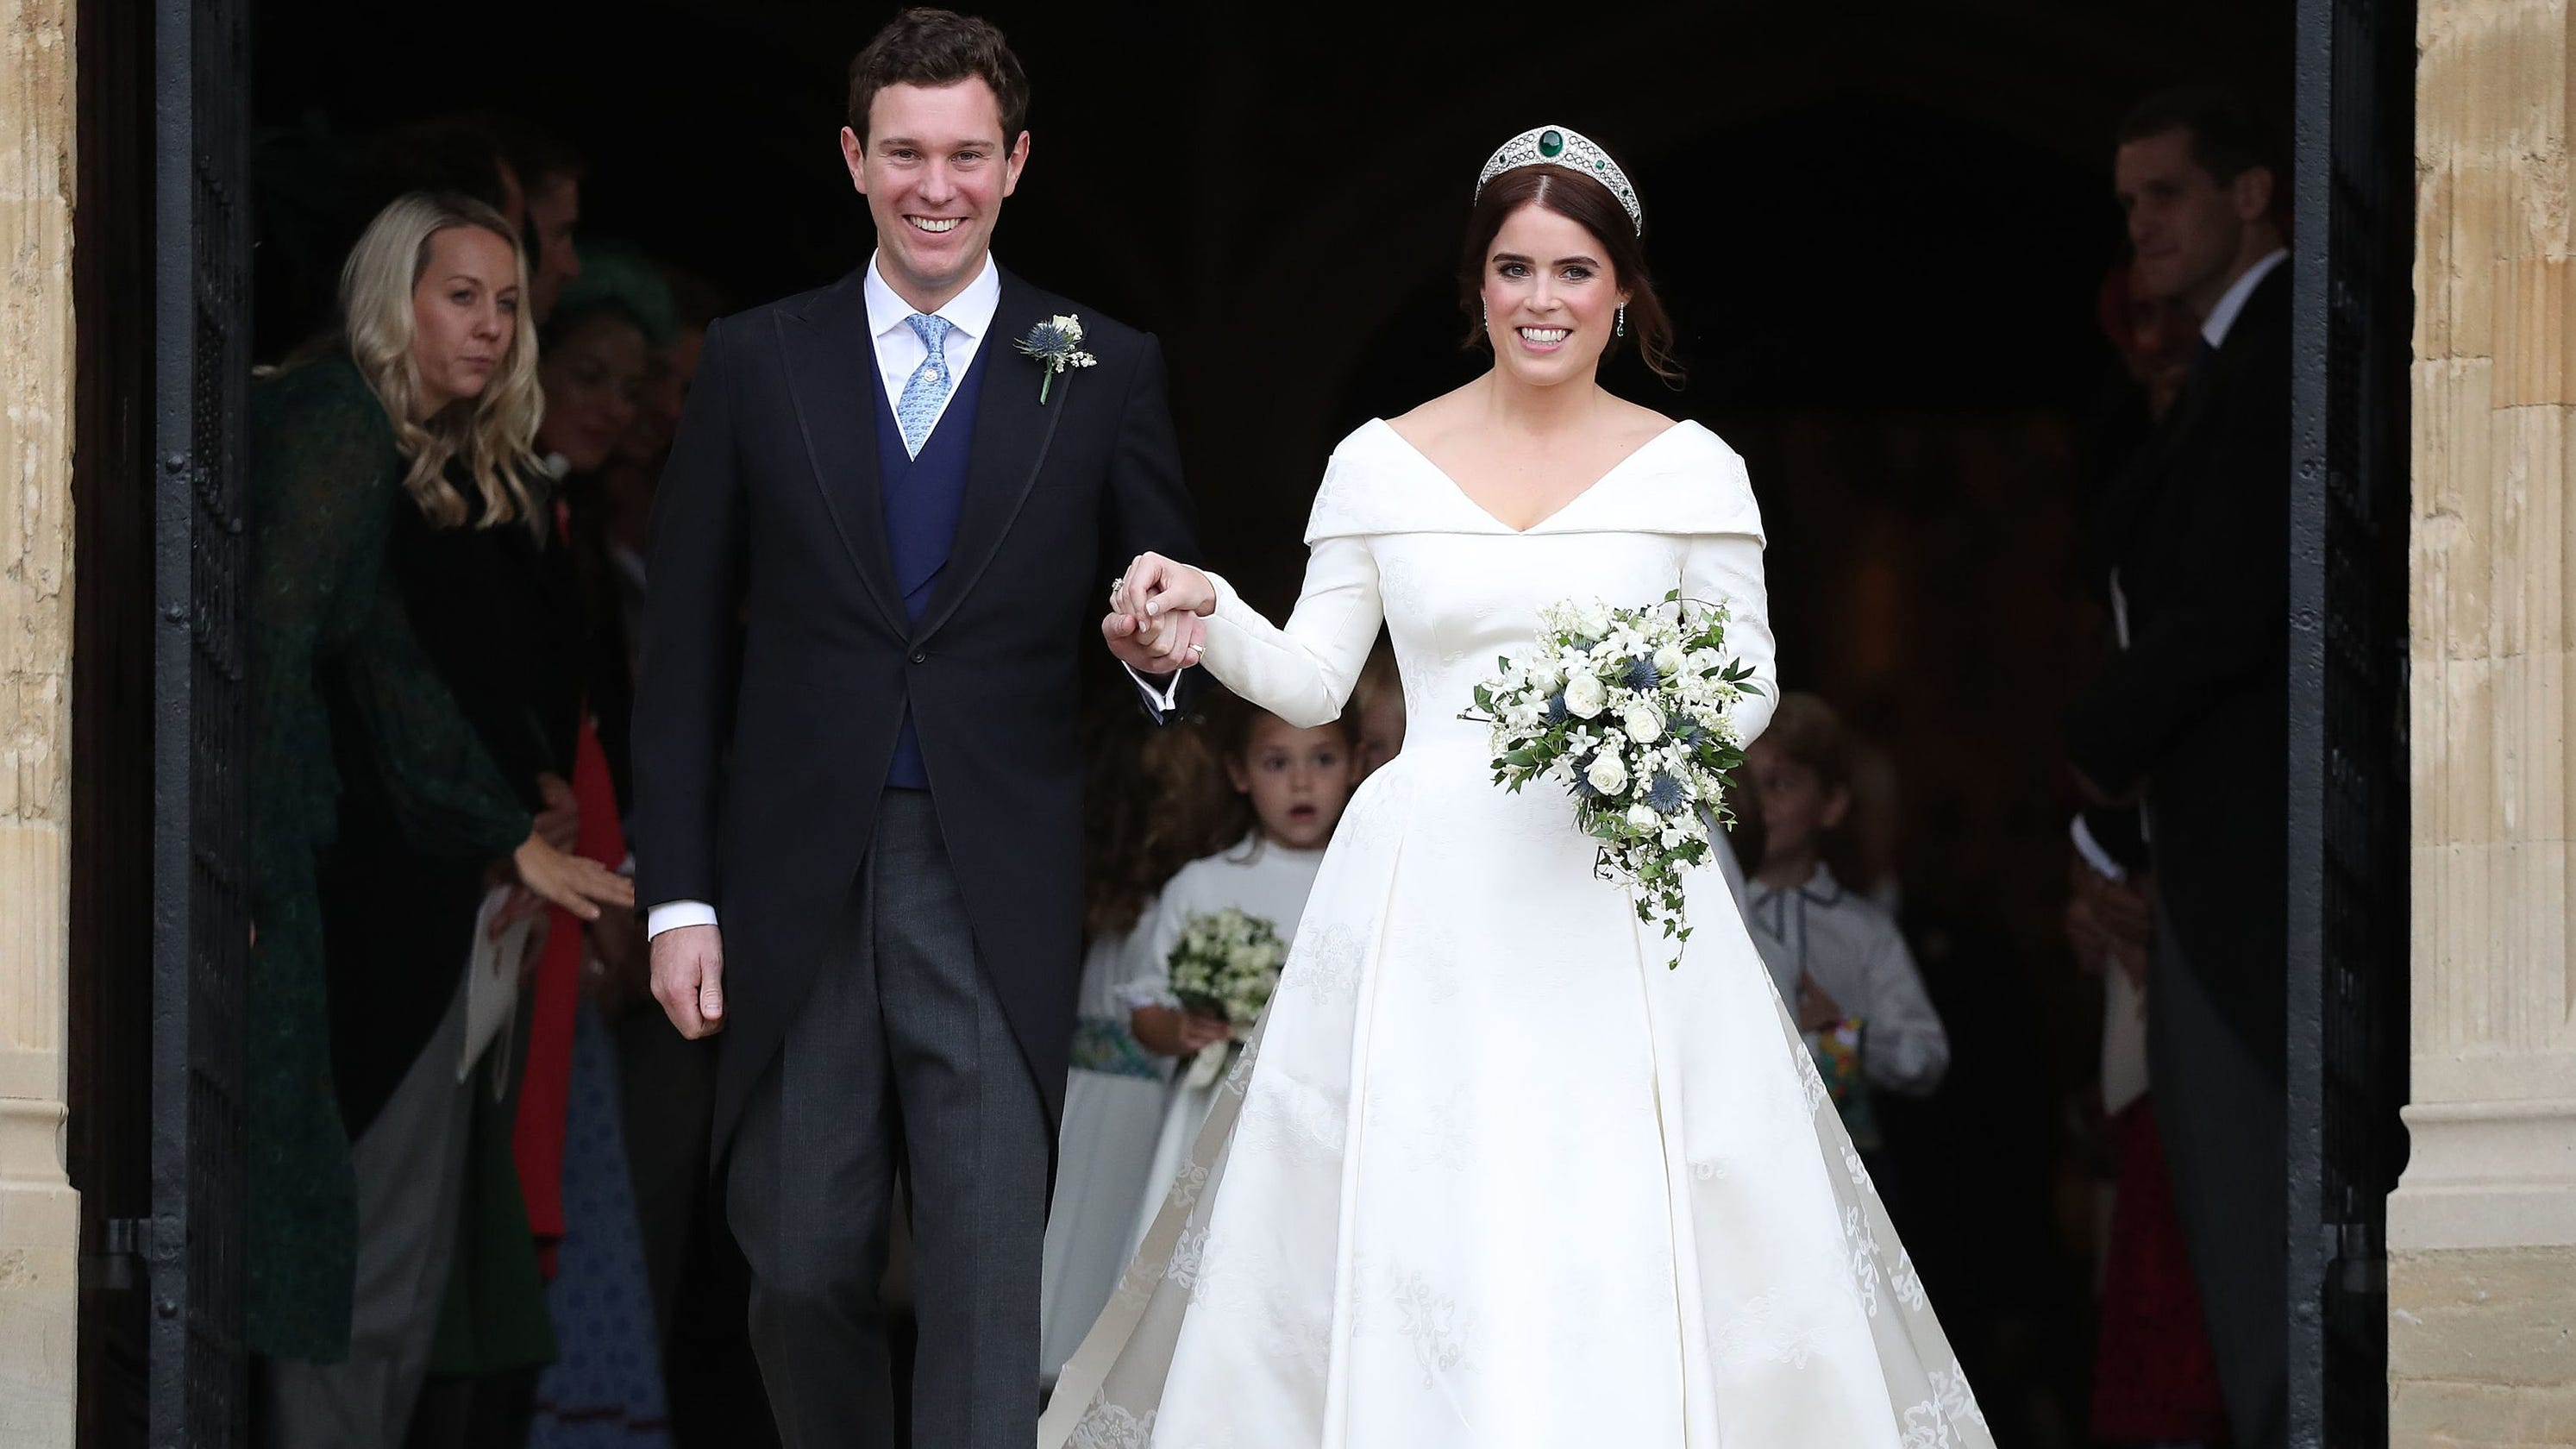 23716a646e0 Princess Eugenie marries Jack Brooksbank at star-studded royal wedding in  Windsor